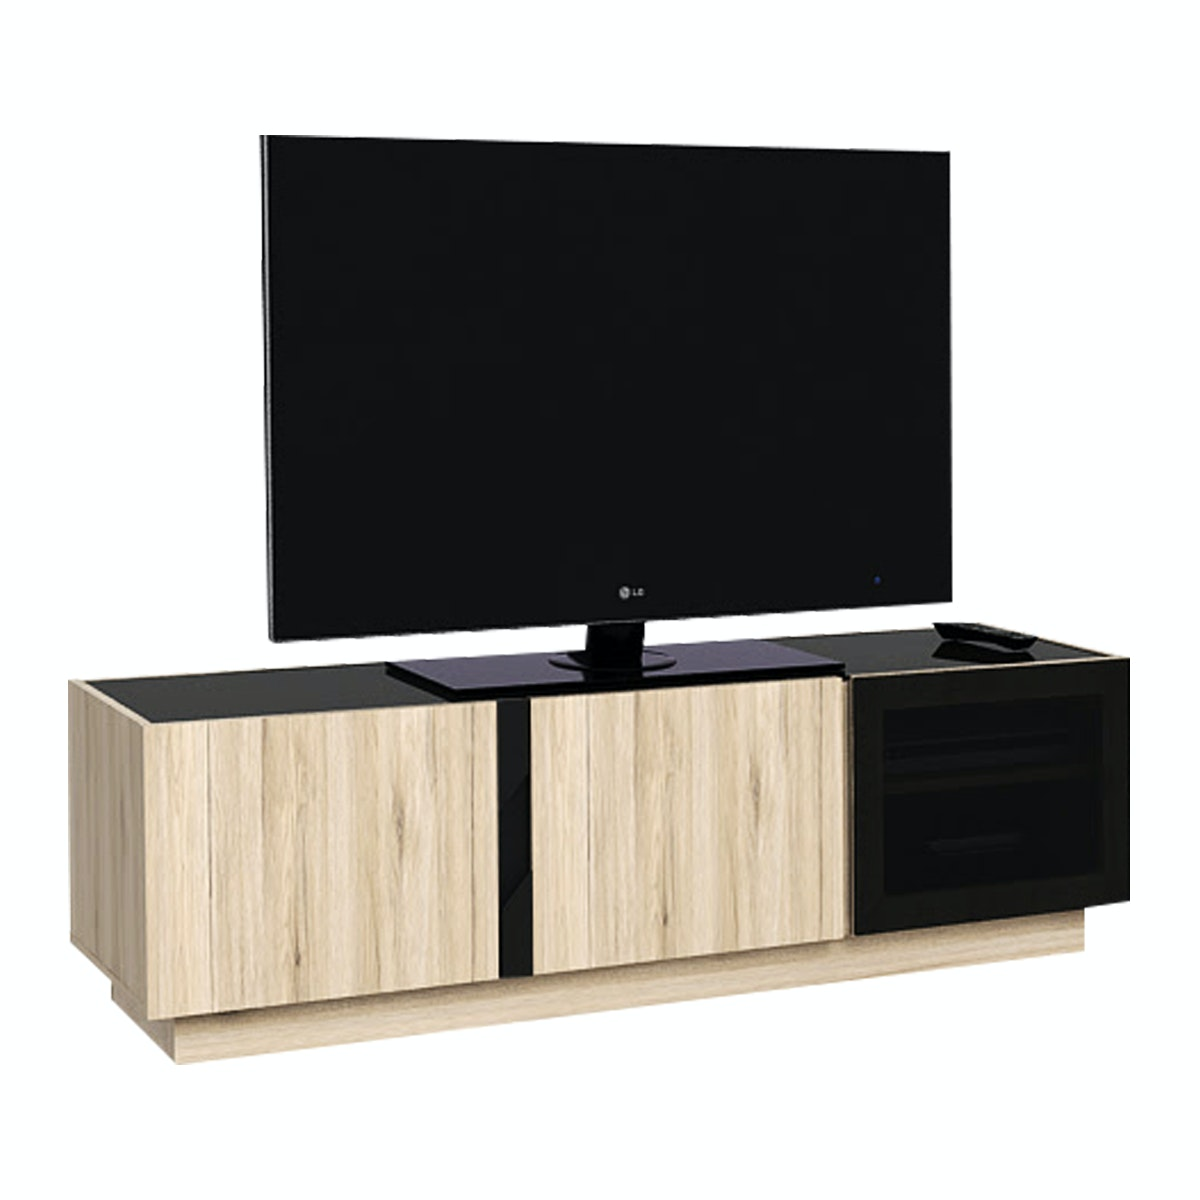 Pro Design Brico Rak TV - Sanremo Light - Black